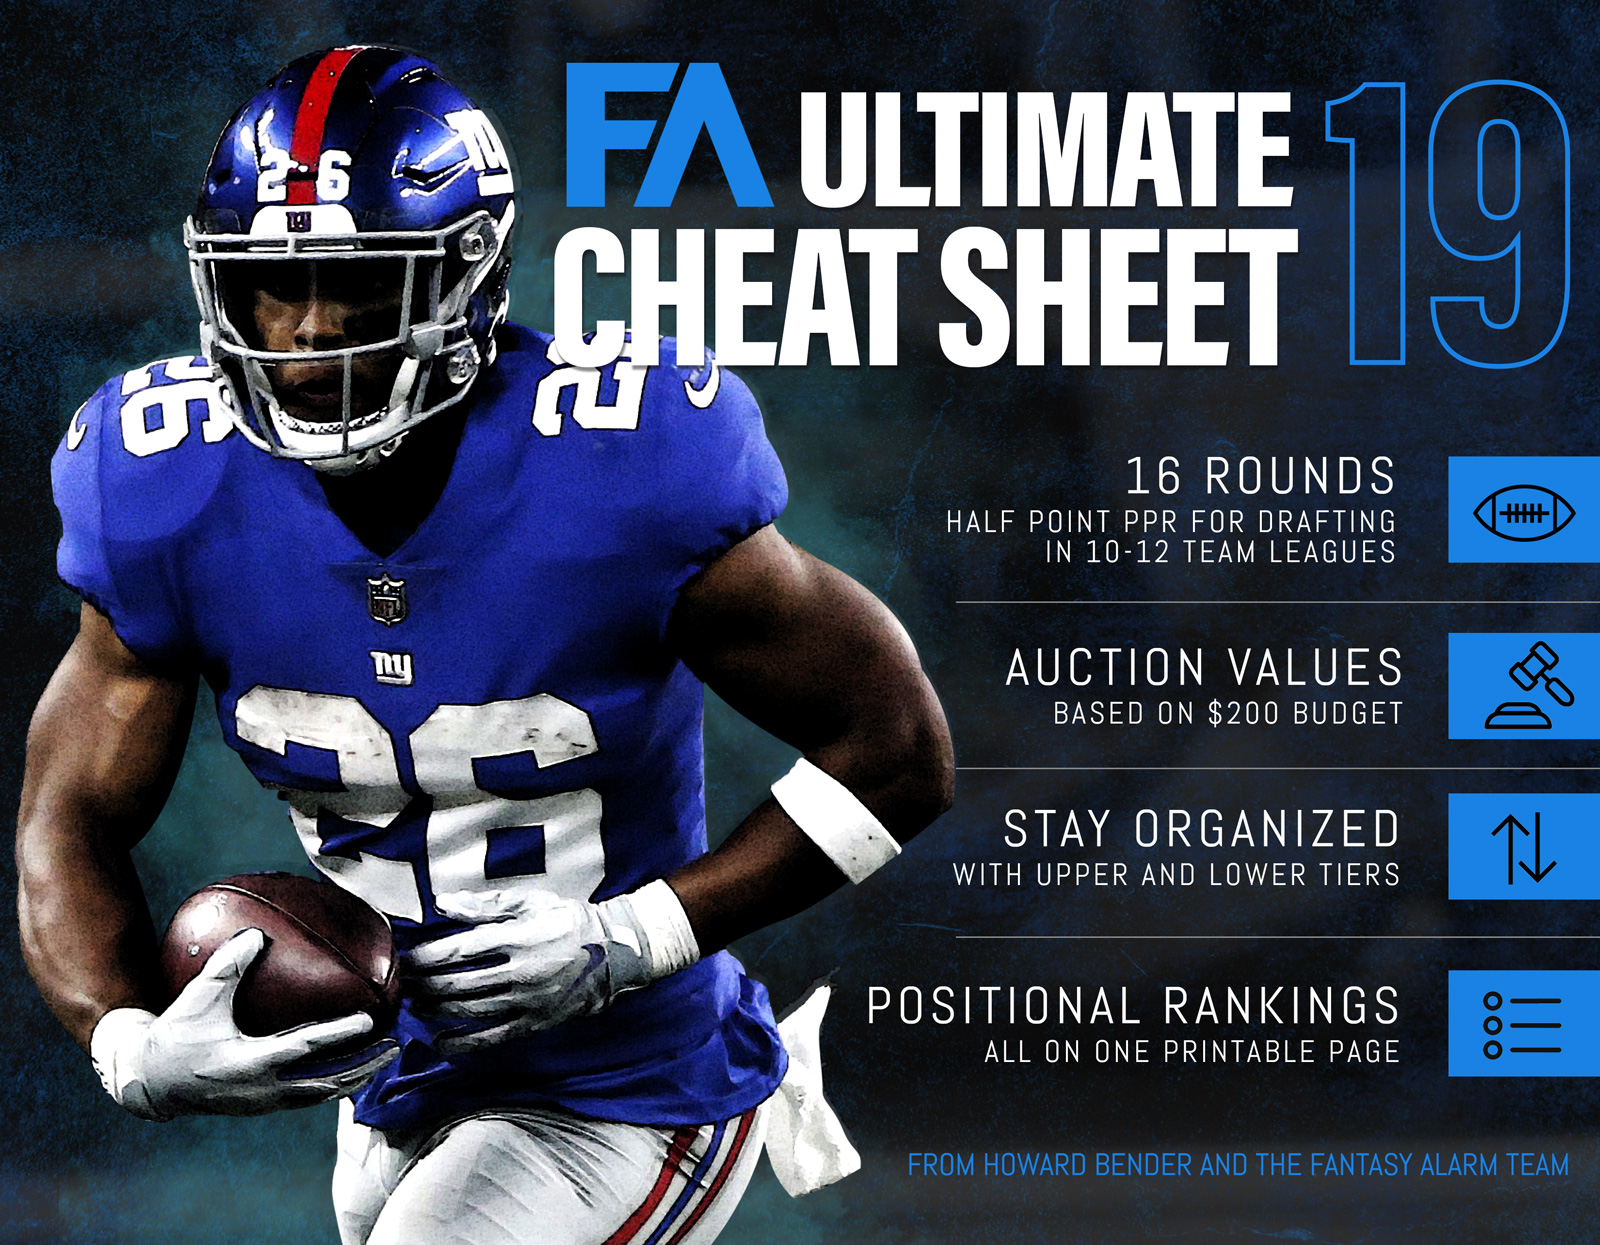 image about Nfl Cheat Sheet Printable named 2019 Howard Bender NFL Supreme Cheat Sheet Myth Alarm